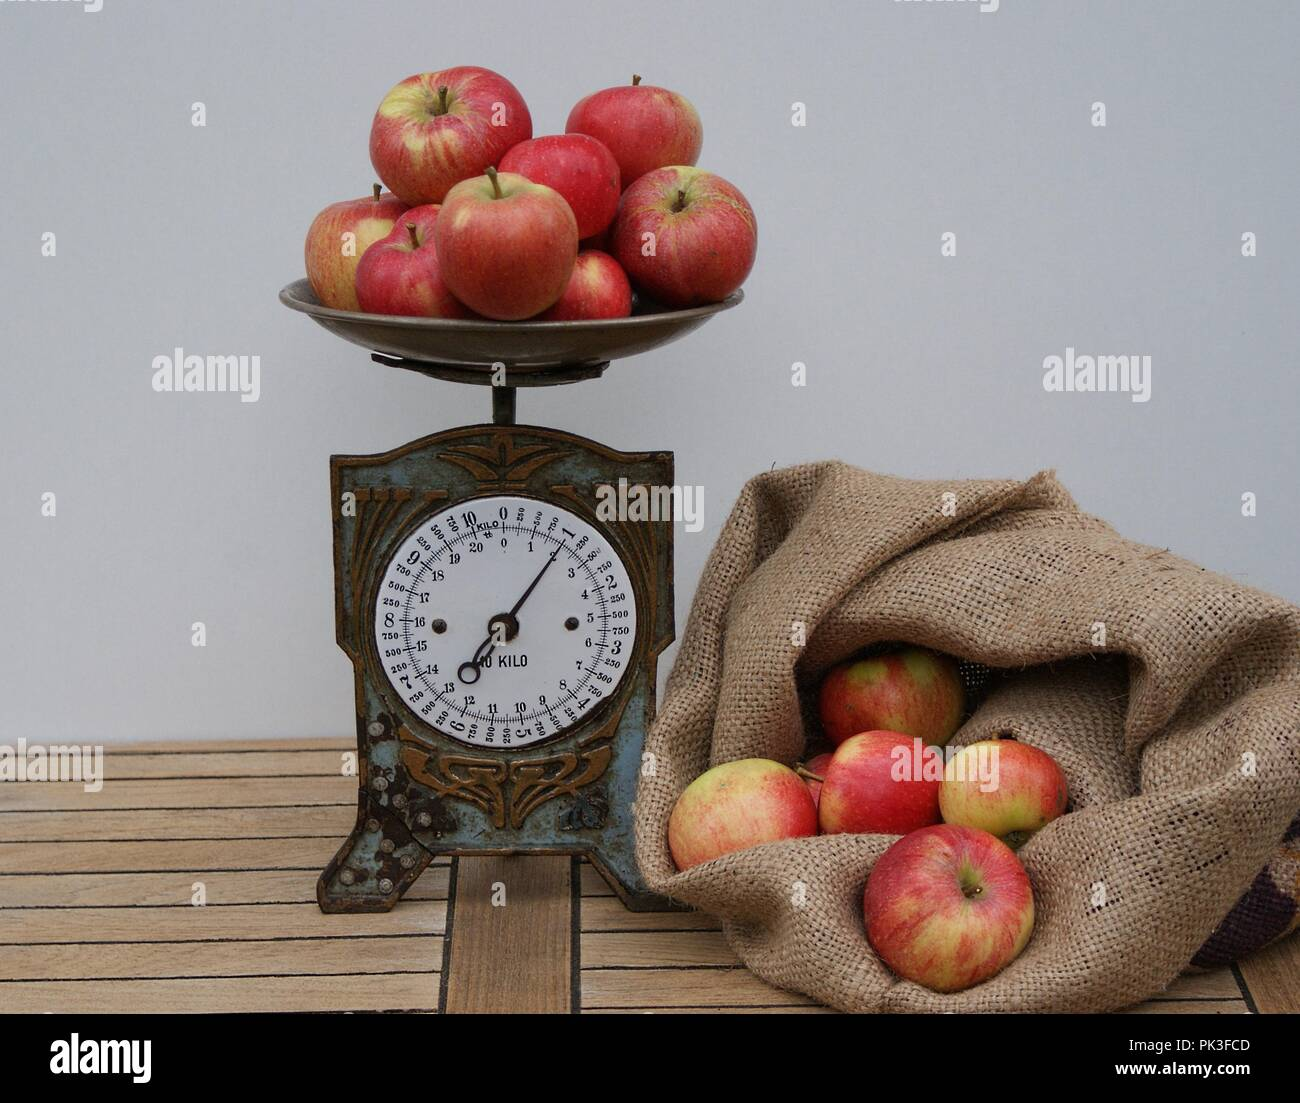 A bag filled with red apples for weighing on the old kitchen scale Stock Photo